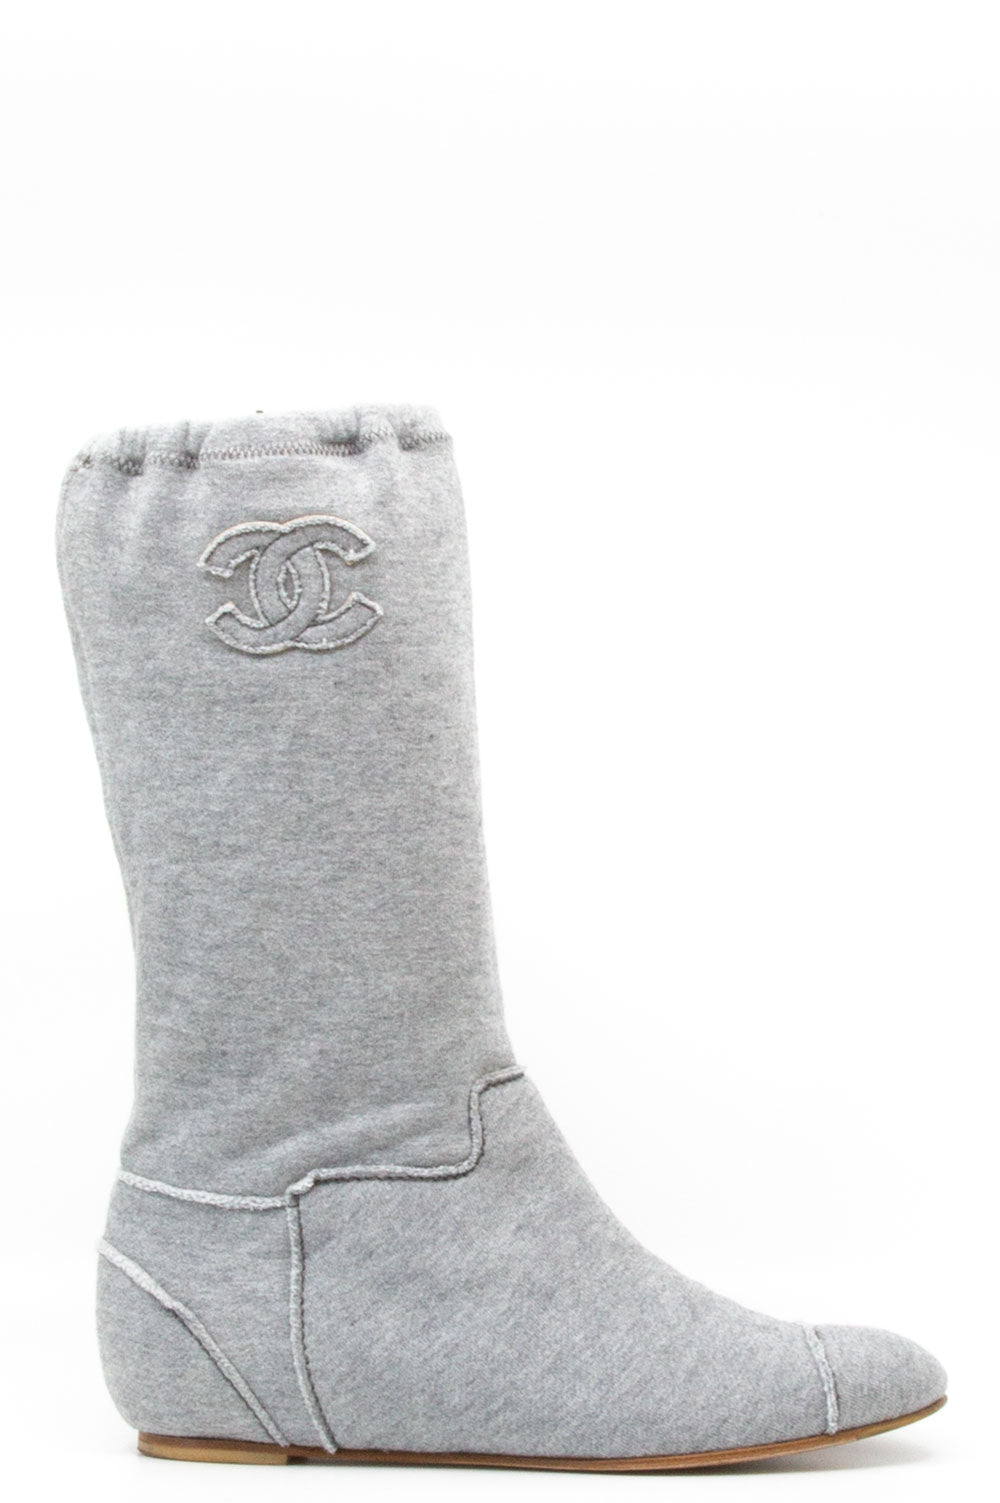 Chanel Boots in grauem Jersey.